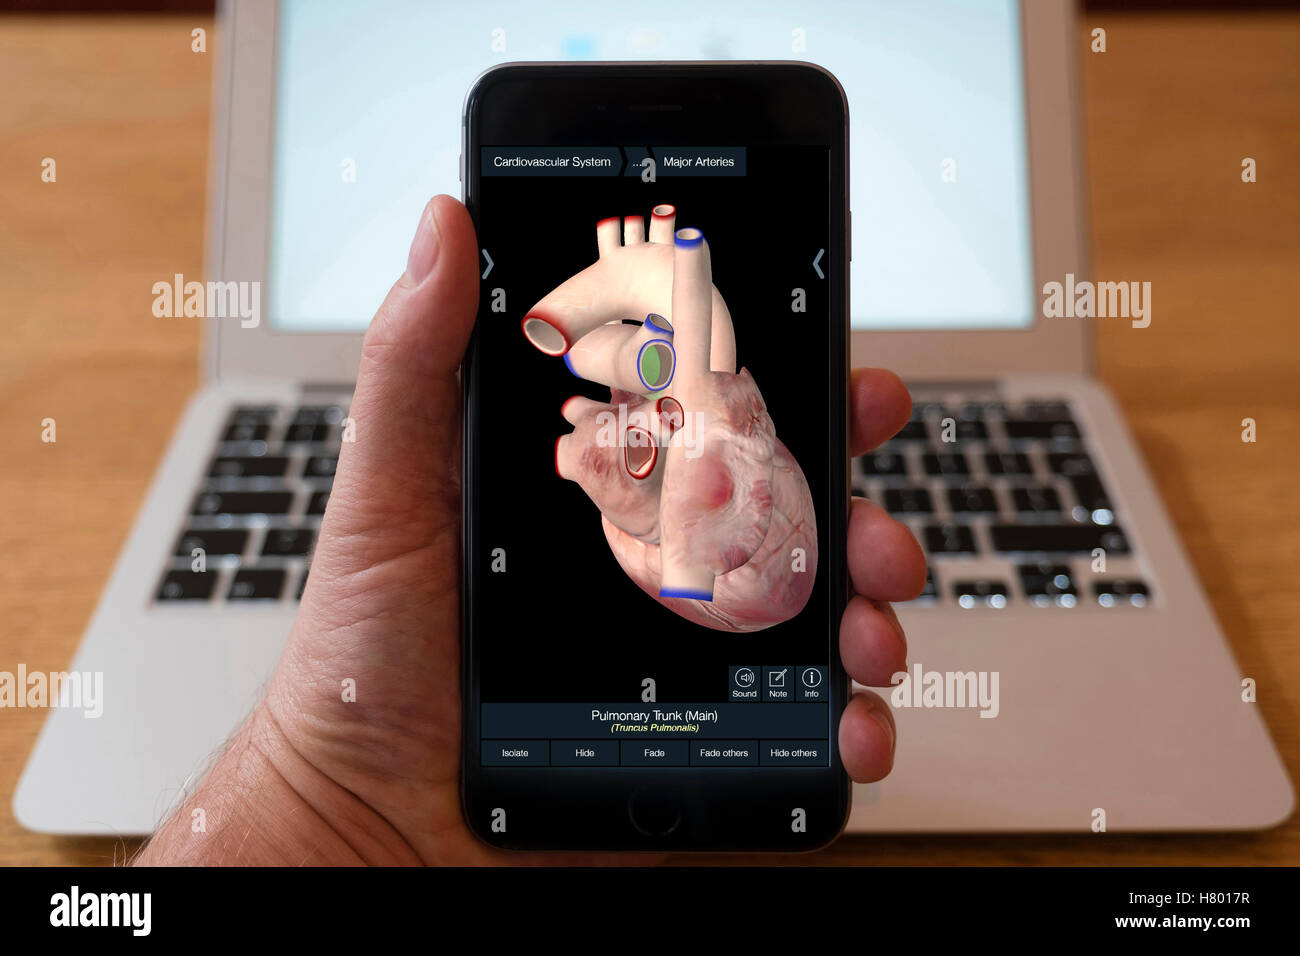 Using iPhone smartphone to display 3D image of human heart  from anatomy educational app - Stock Image